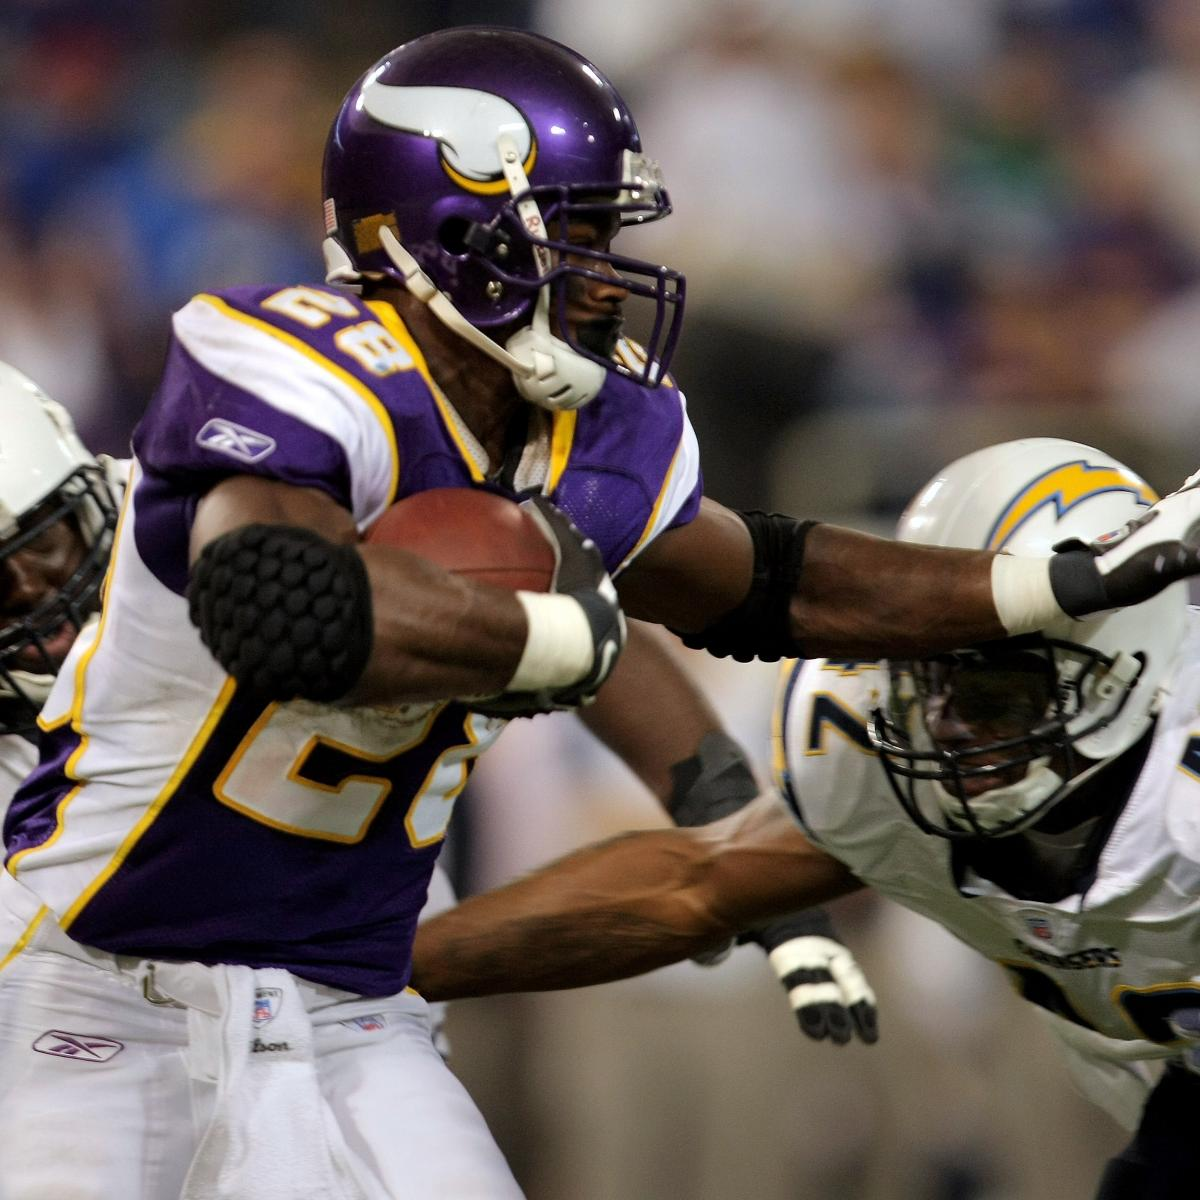 San Diego Chargers Coaches: San Diego Chargers Vs. Minnesota Vikings: Preseason Week 3